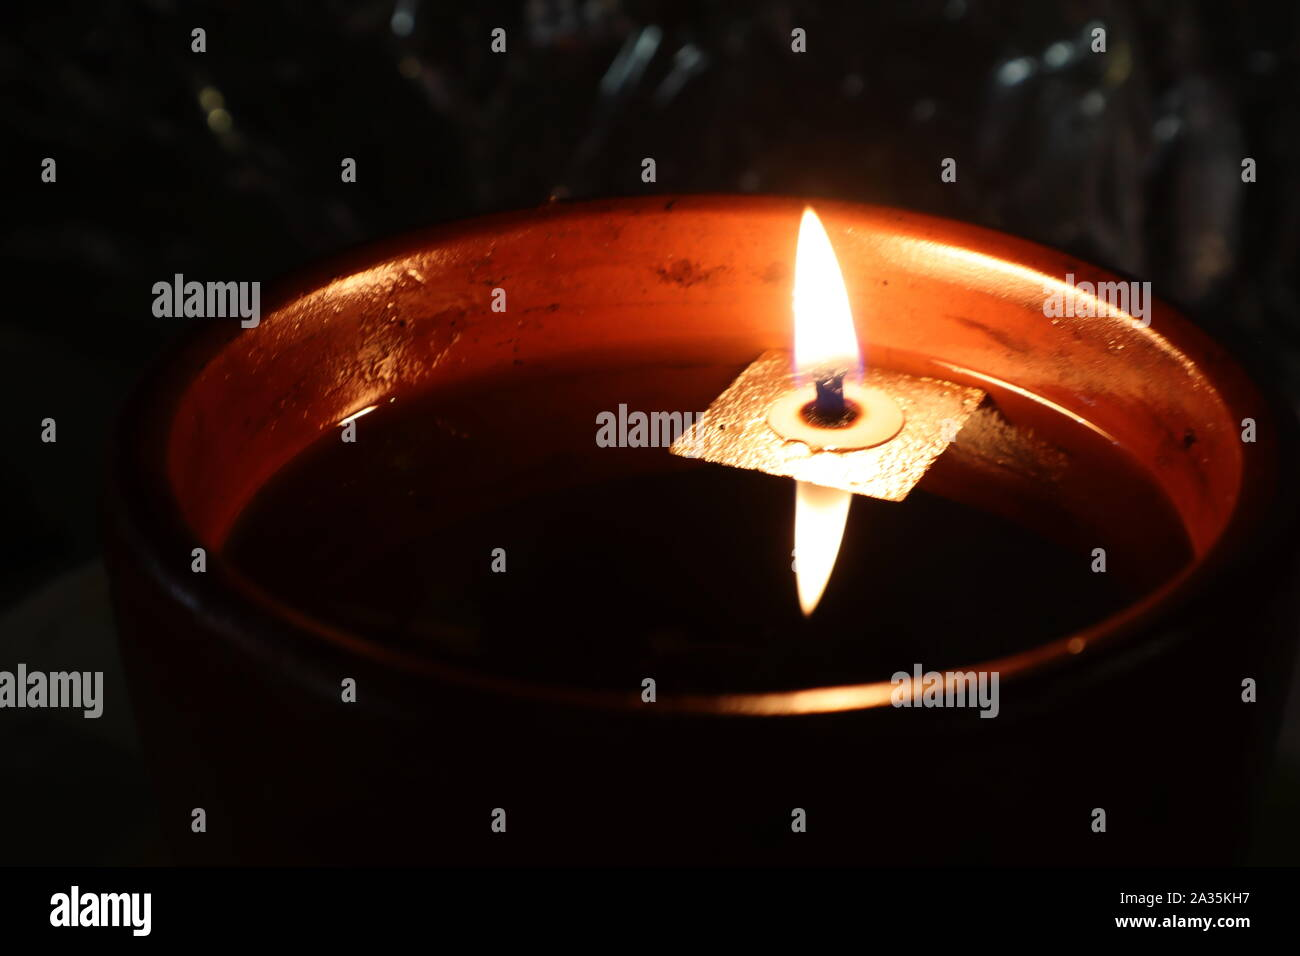 Picture of: Floating Wick High Resolution Stock Photography And Images Alamy